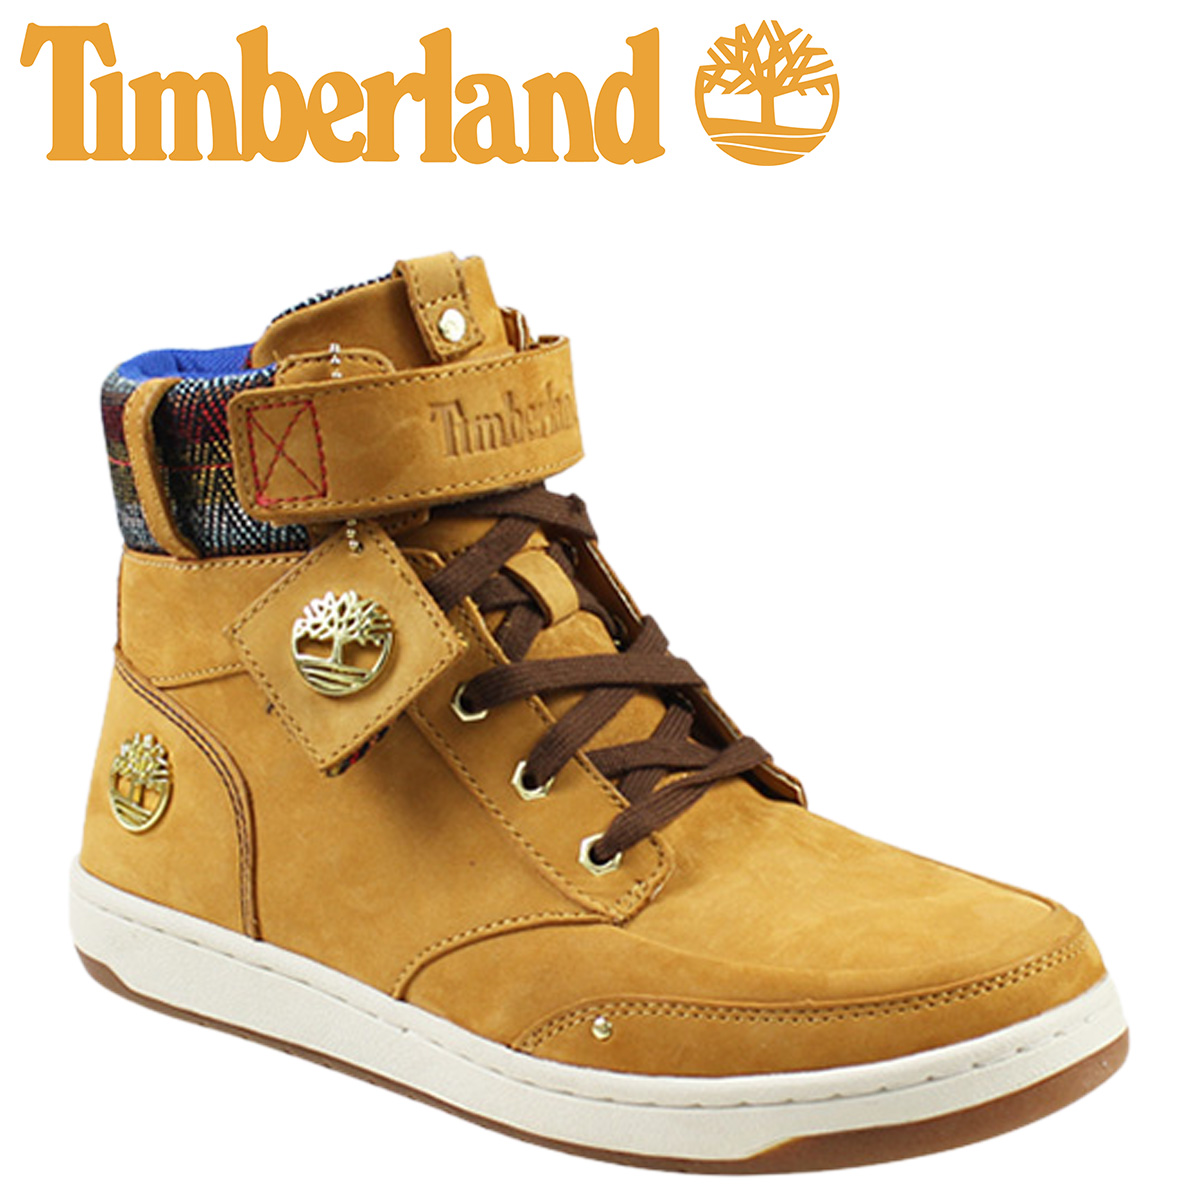 81f09205bdb9d0 ALLSPORTS: [SOLD OUT] Timberland Timberland marbles roll top chukka ...